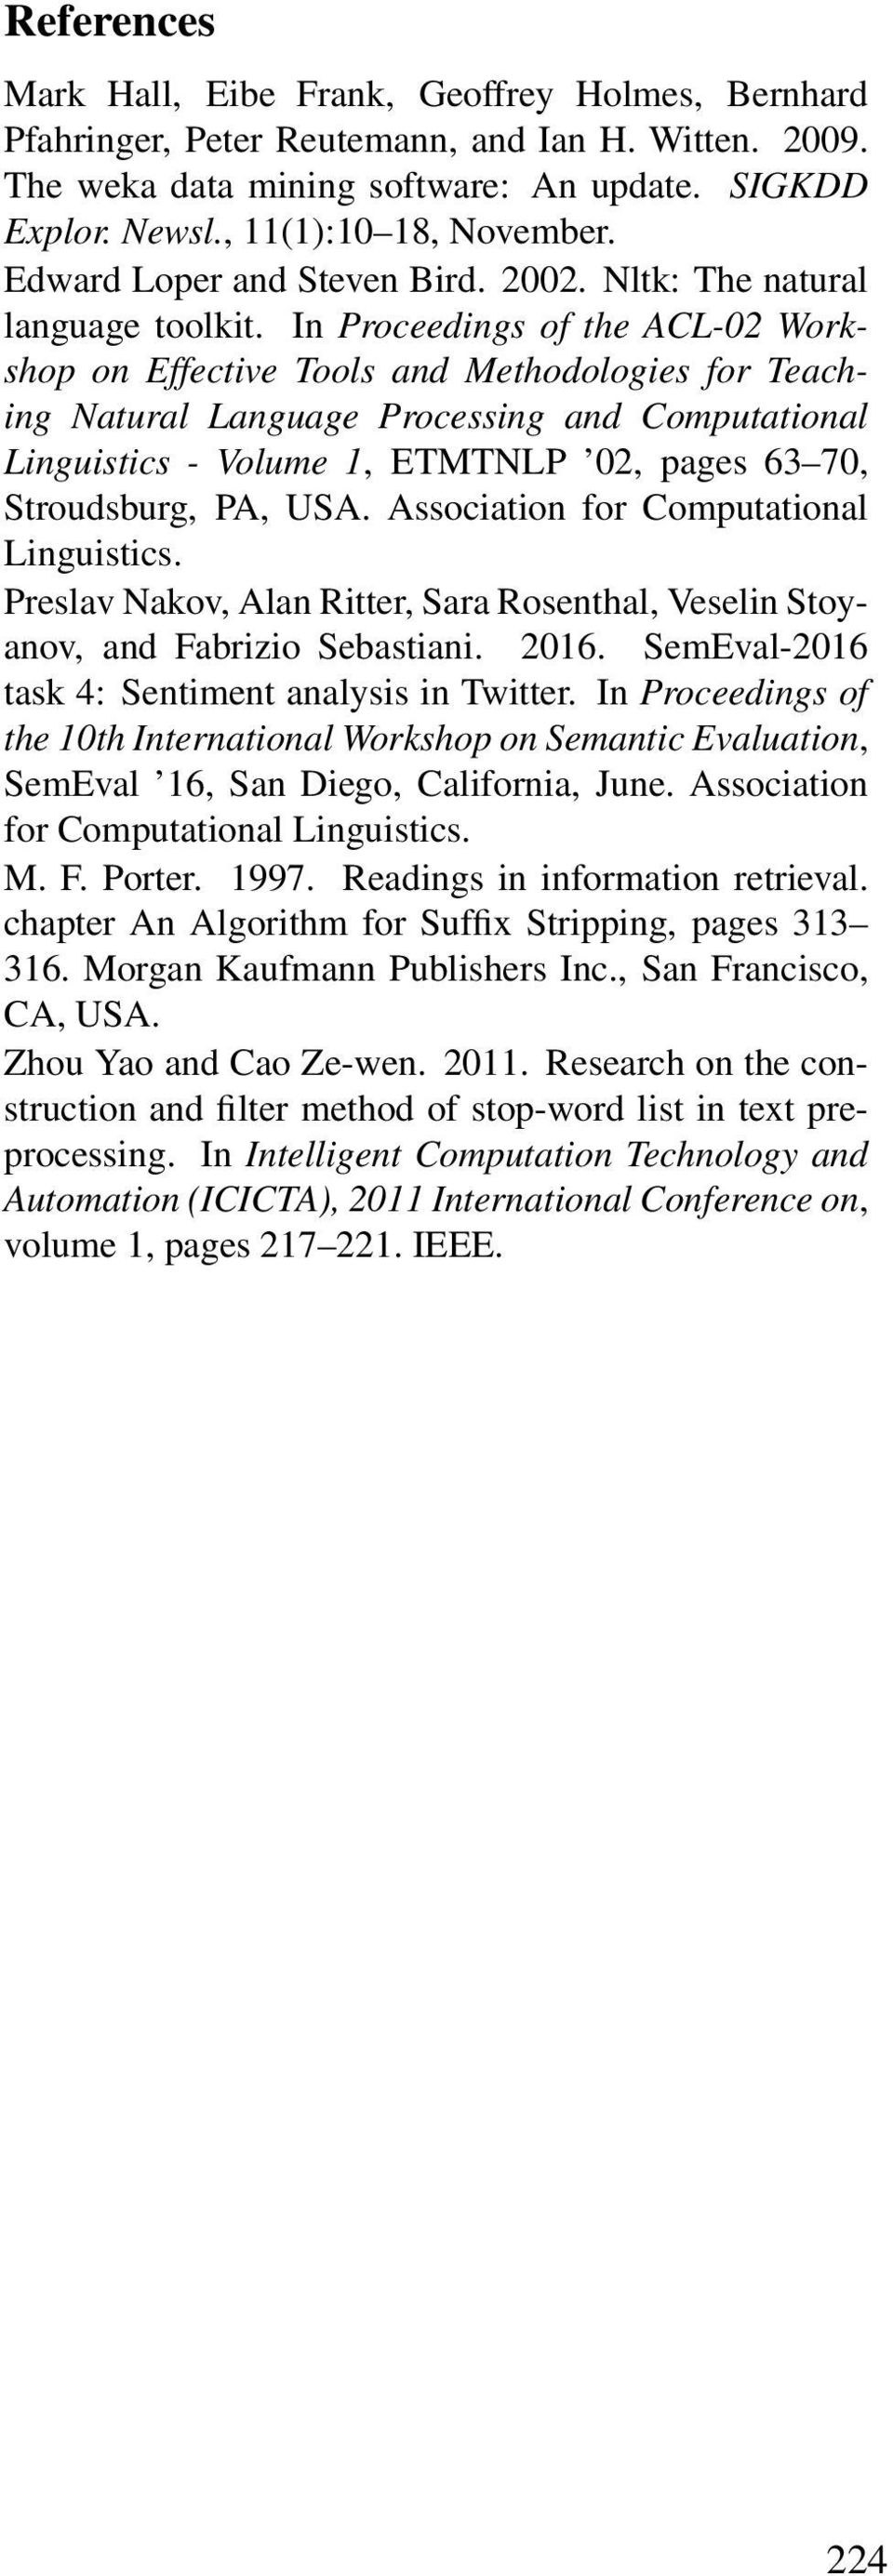 In Proceedings of the ACL-02 Workshop on Effective Tools and Methodologies for Teaching Natural Language Processing and Computational Linguistics - Volume 1, ETMTNLP 02, pages 63 70, Stroudsburg, PA,